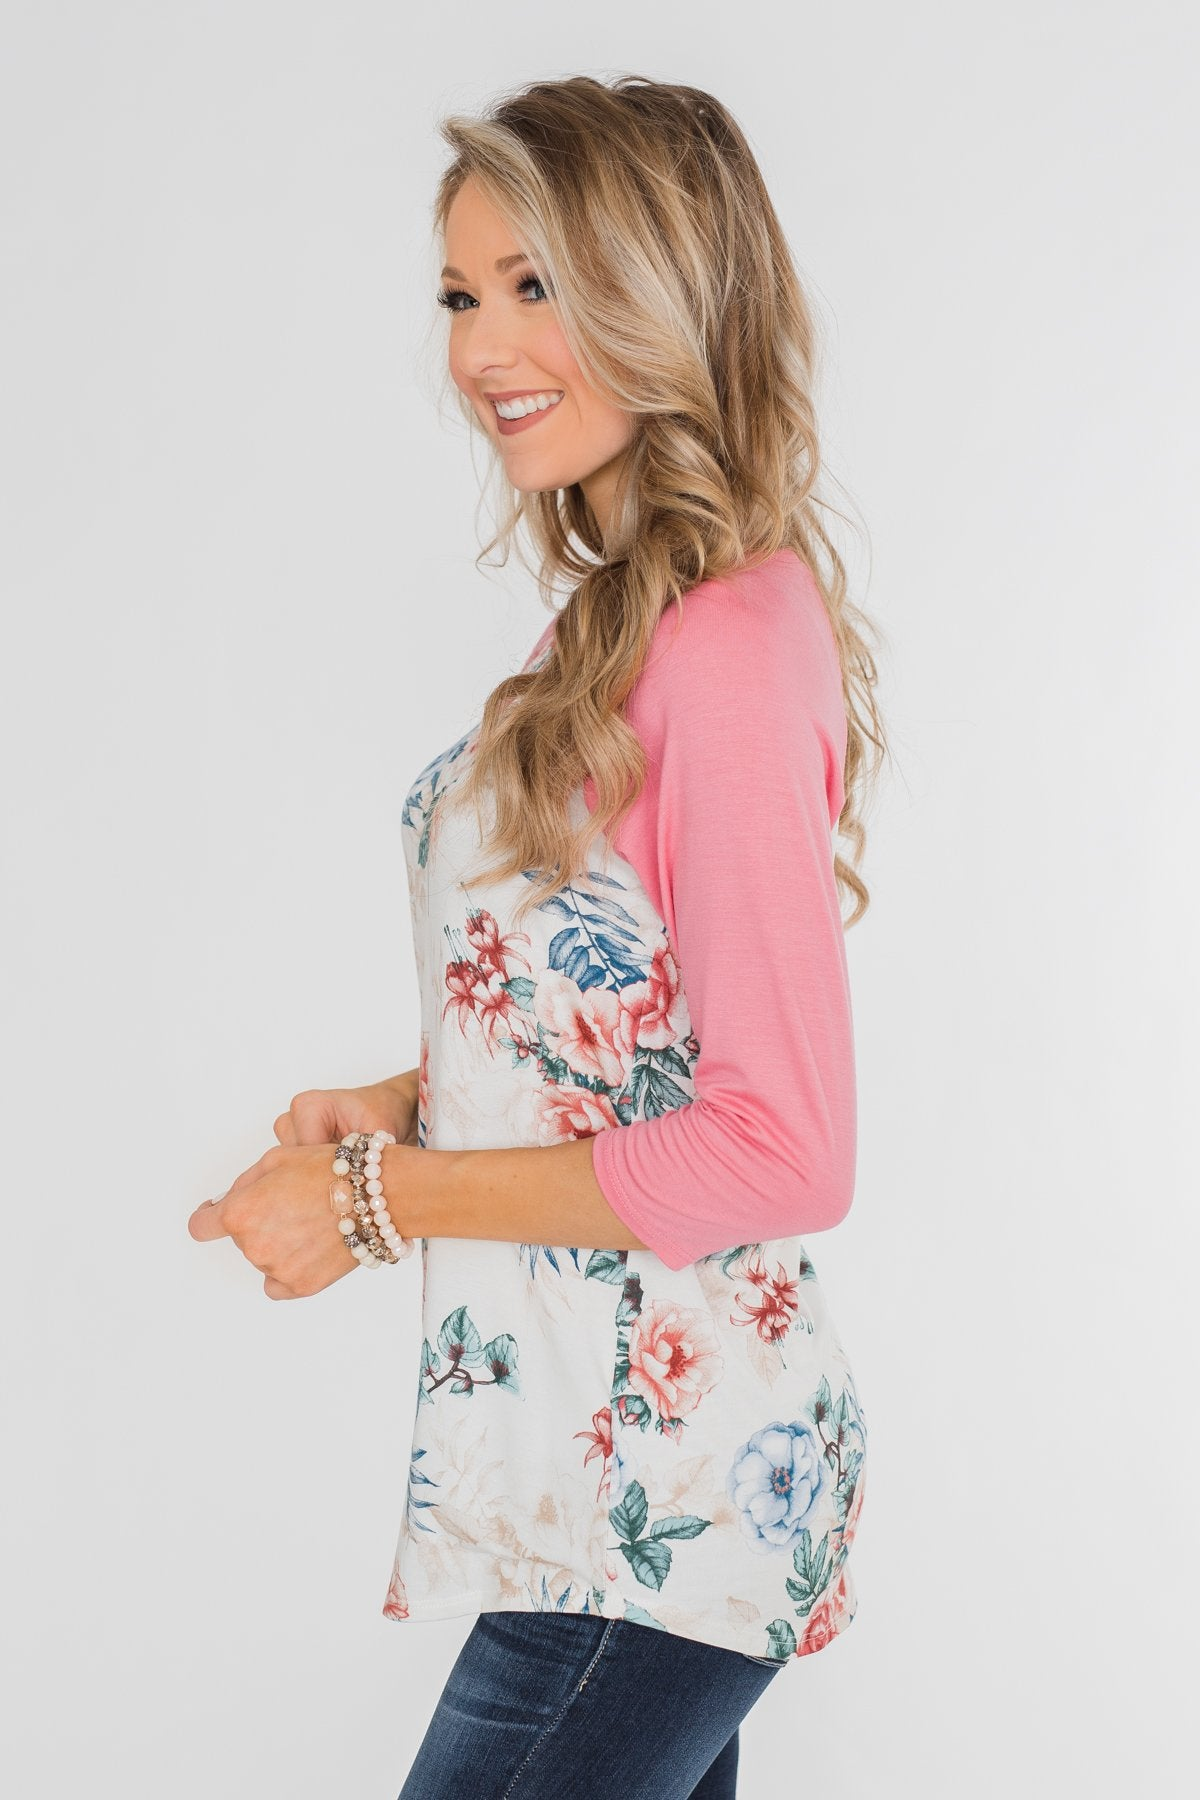 Floral Blessings 3/4 Sleeve Top- Ivory & Pink